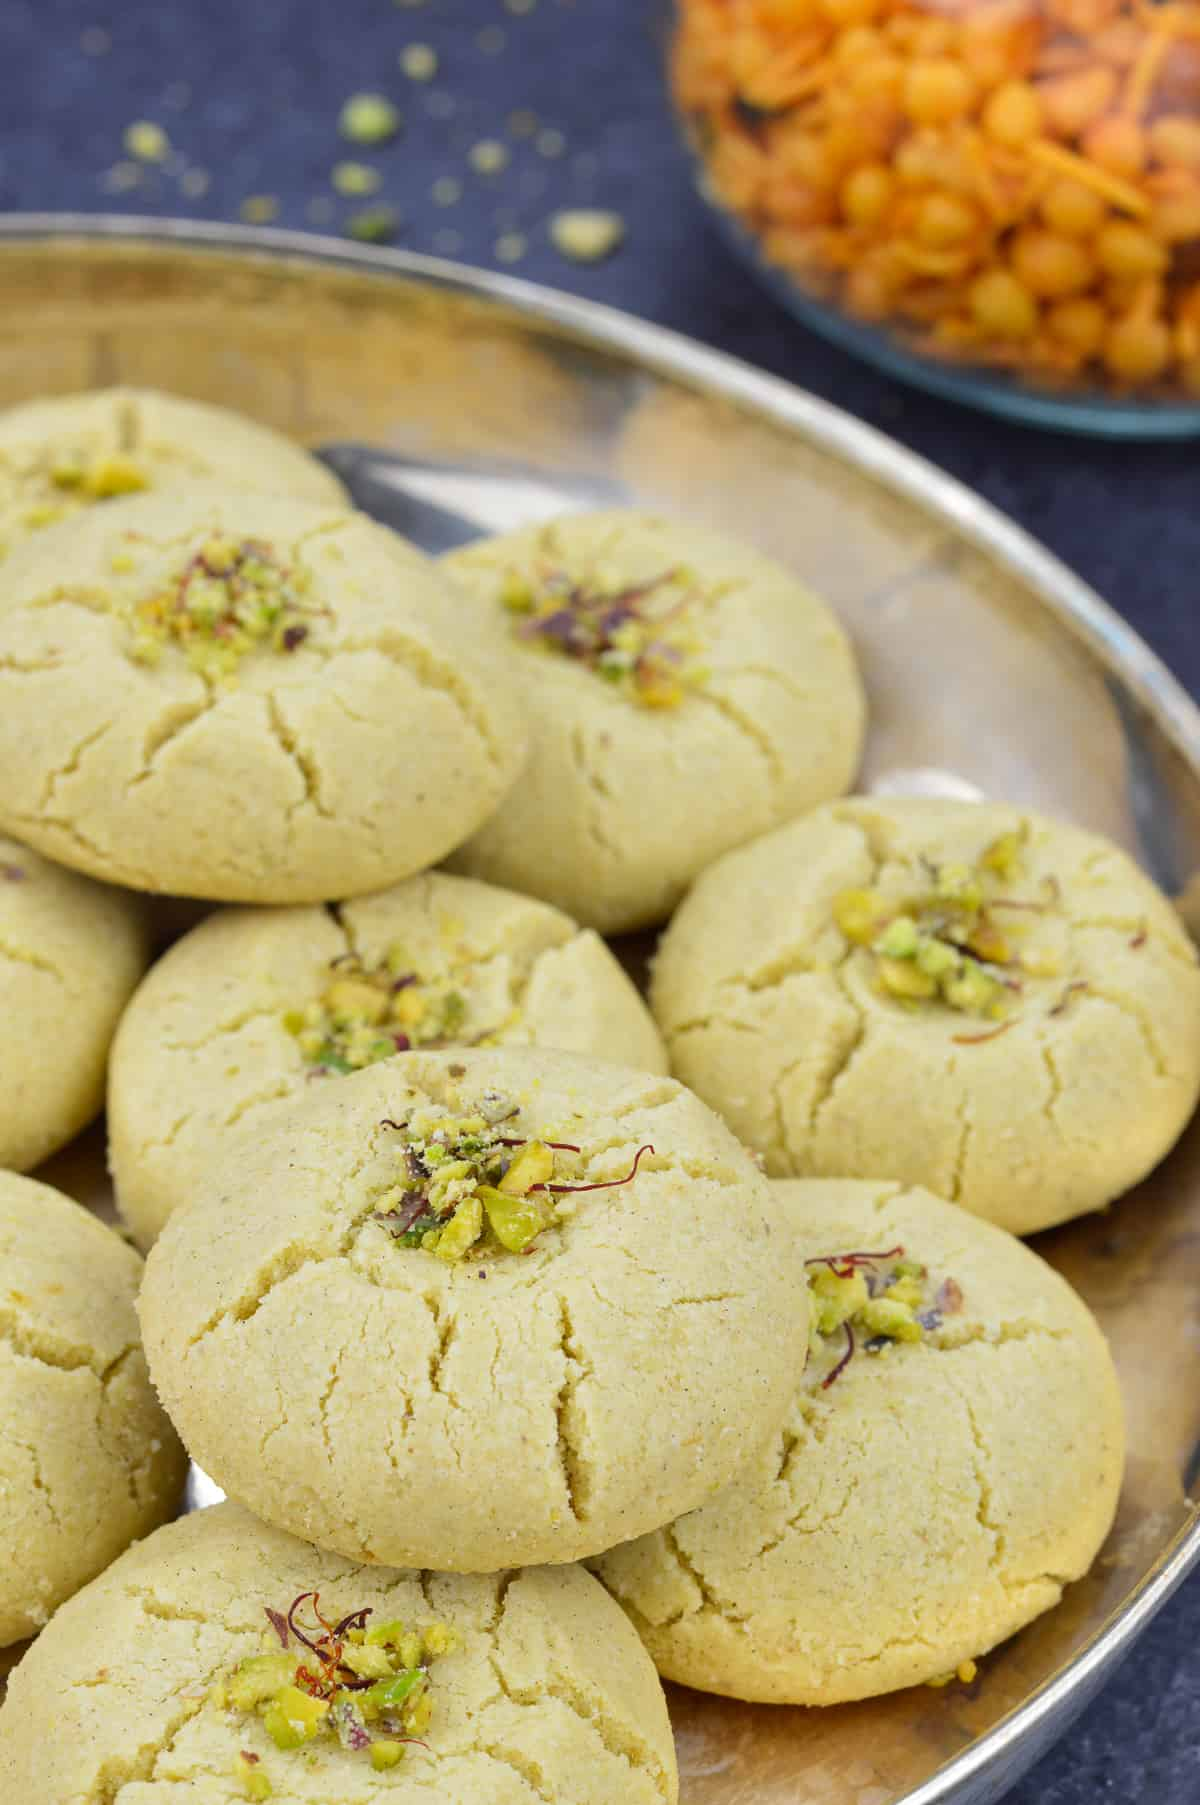 a plate of nankhatai biscuits garnished with pistachios and saffron strands, with indian snacks in the background